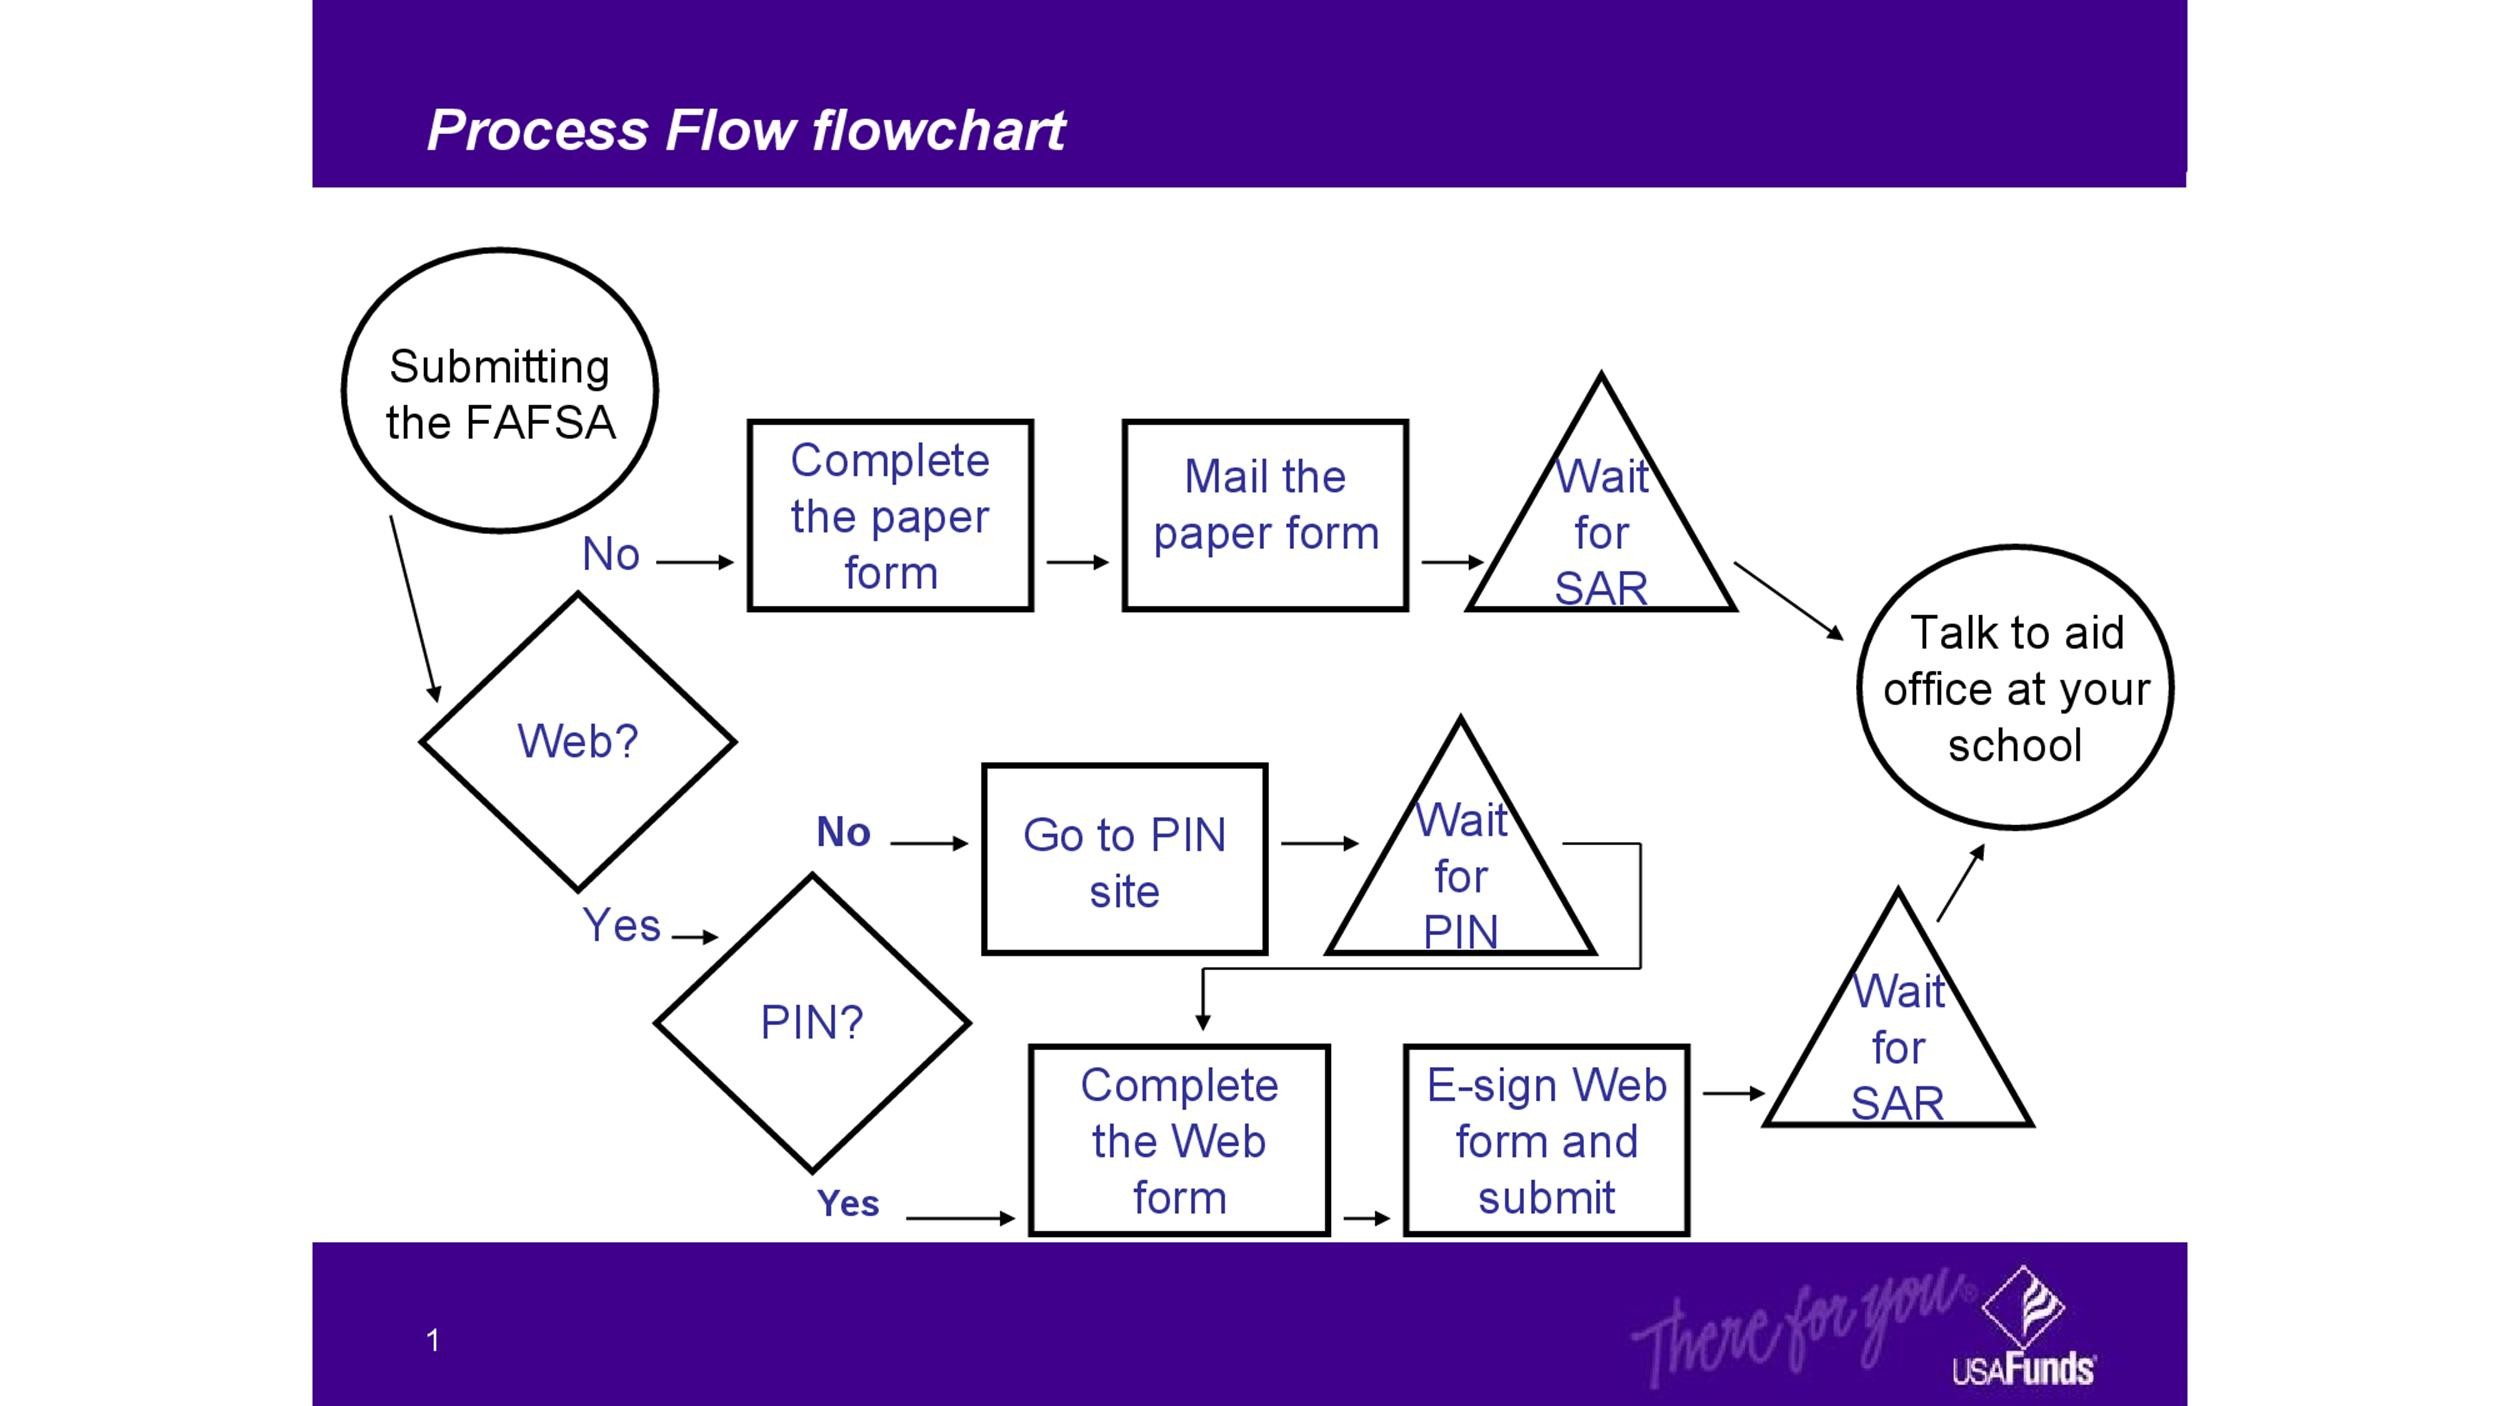 Doc585374 Template Flowchart Flow Chart Template 30 Free Word – Process Flow in Word